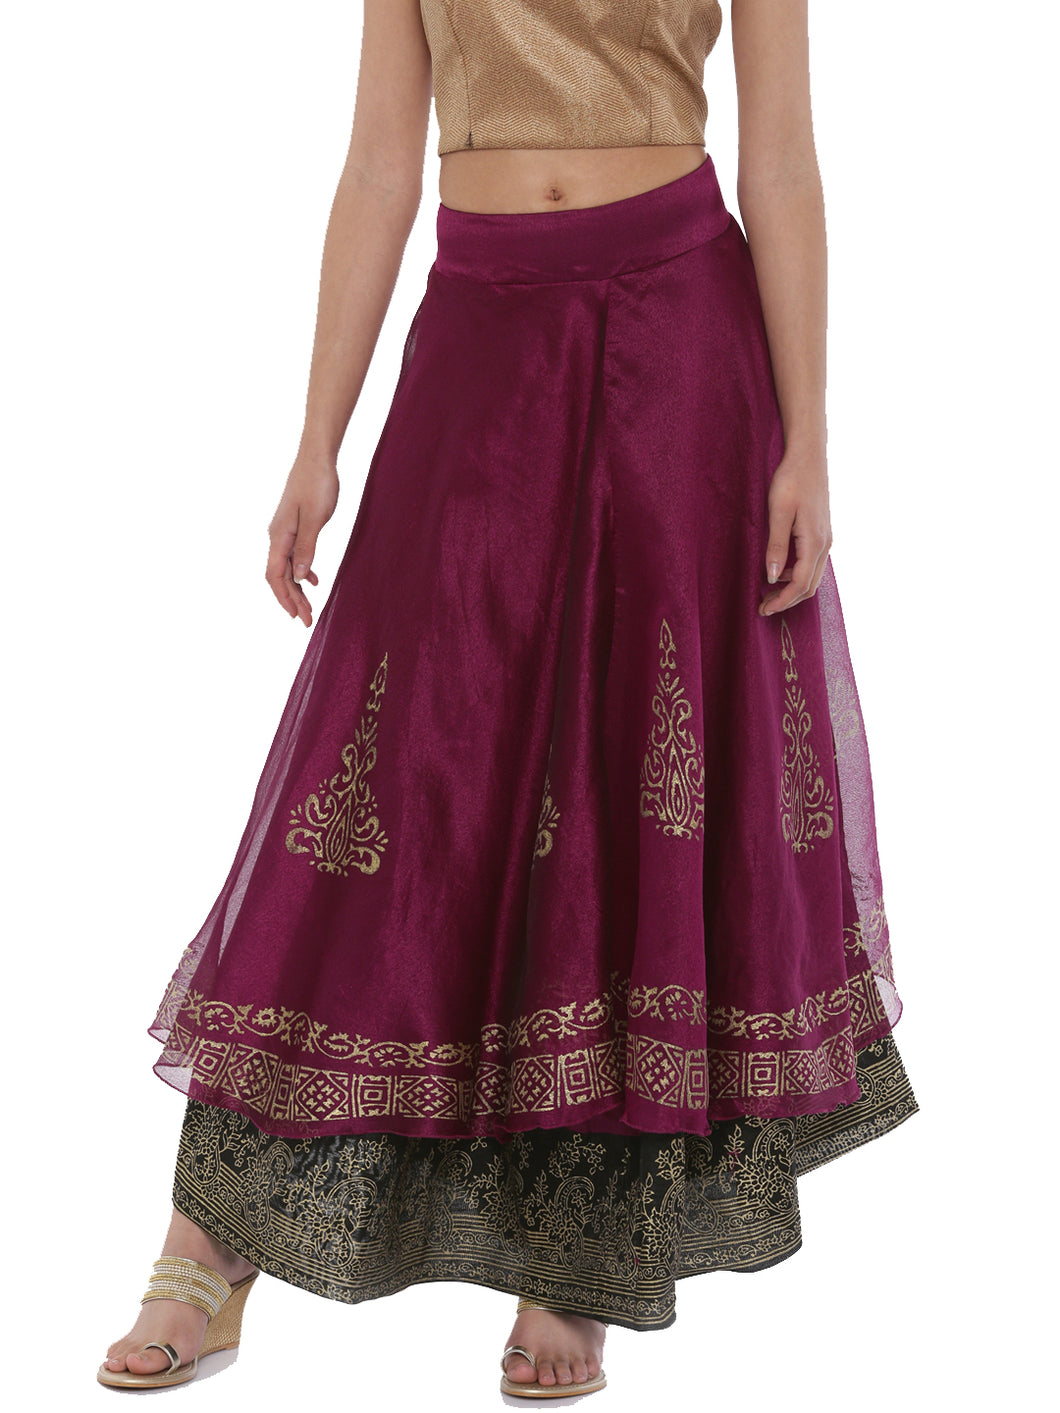 Double Layered Skirt In Tissue And Ity With Gold Print